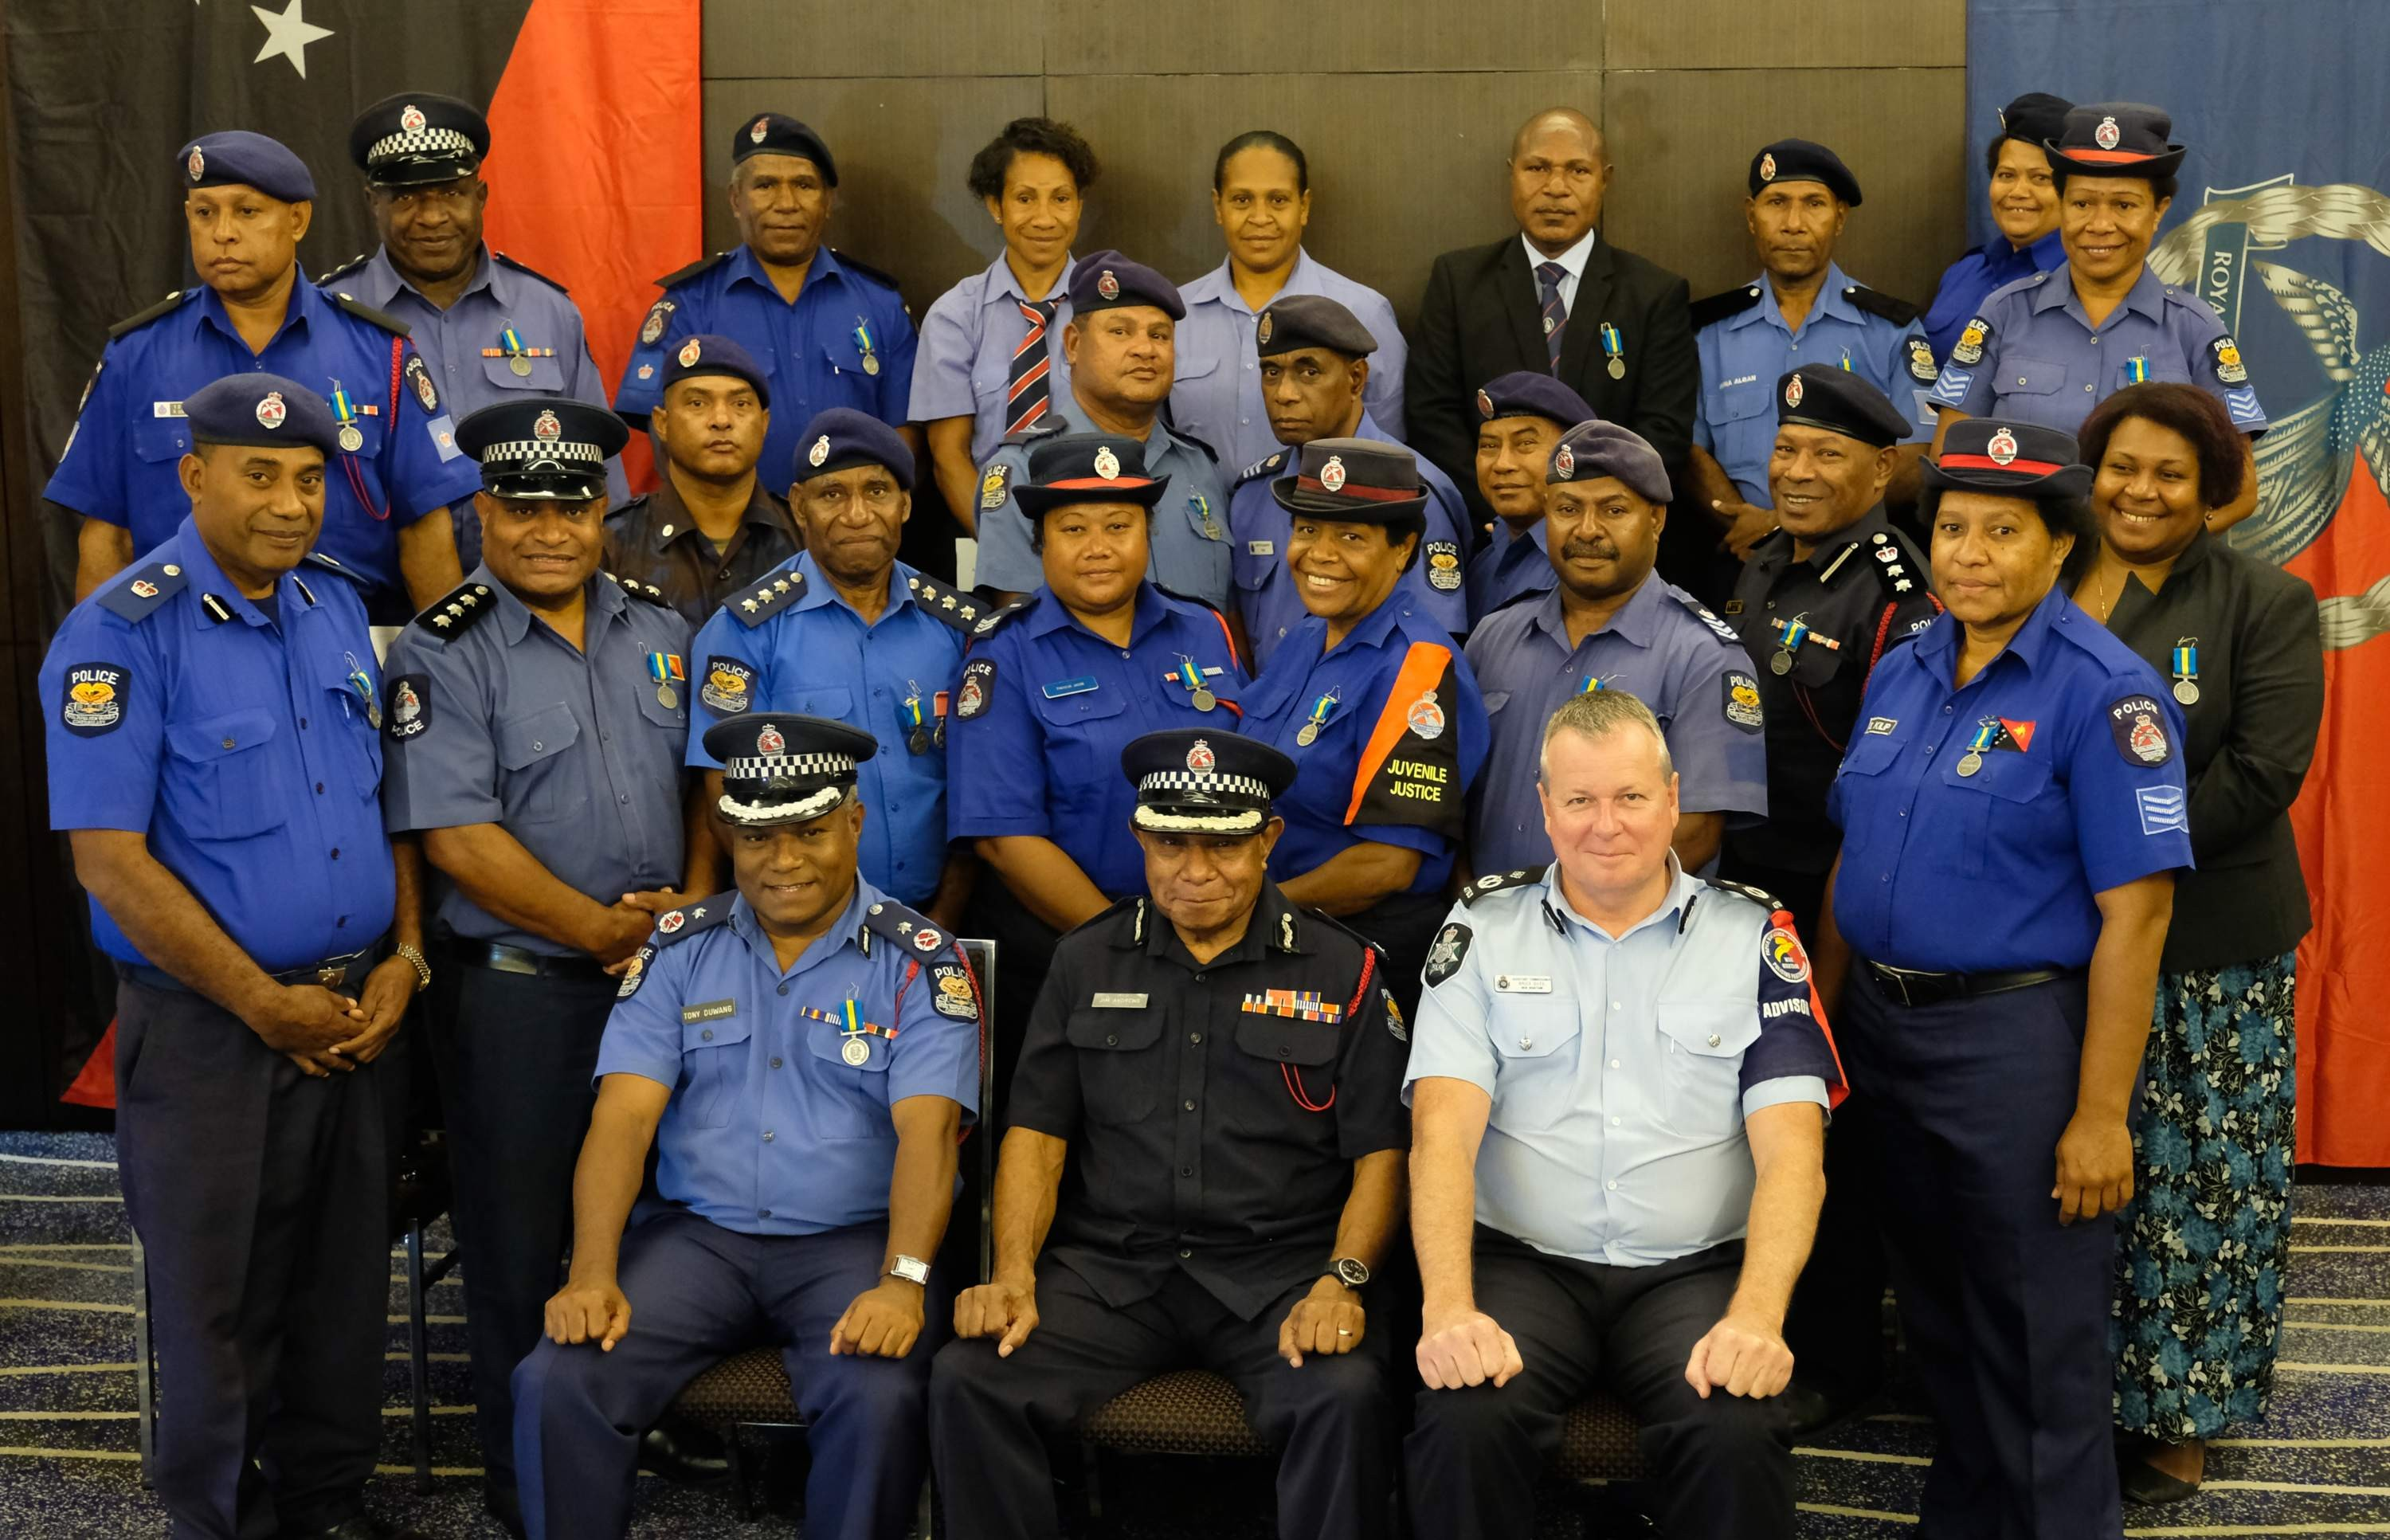 Seated from left is Assistant Commissioner of Police Logistics Tonny Duwang, Deputy Commissioner of Police and Chief of Operations Jim Andrews and Mission Commander of the PNG-Australia Policing Partnership Assistant Commissioner of Police Bruce Giles with the recipients of the  Royal Solomon Islands Police's International Law Enforcement Cooperation Medal at the Stanley Hotel in Port Moresby on Monday, Aug 13